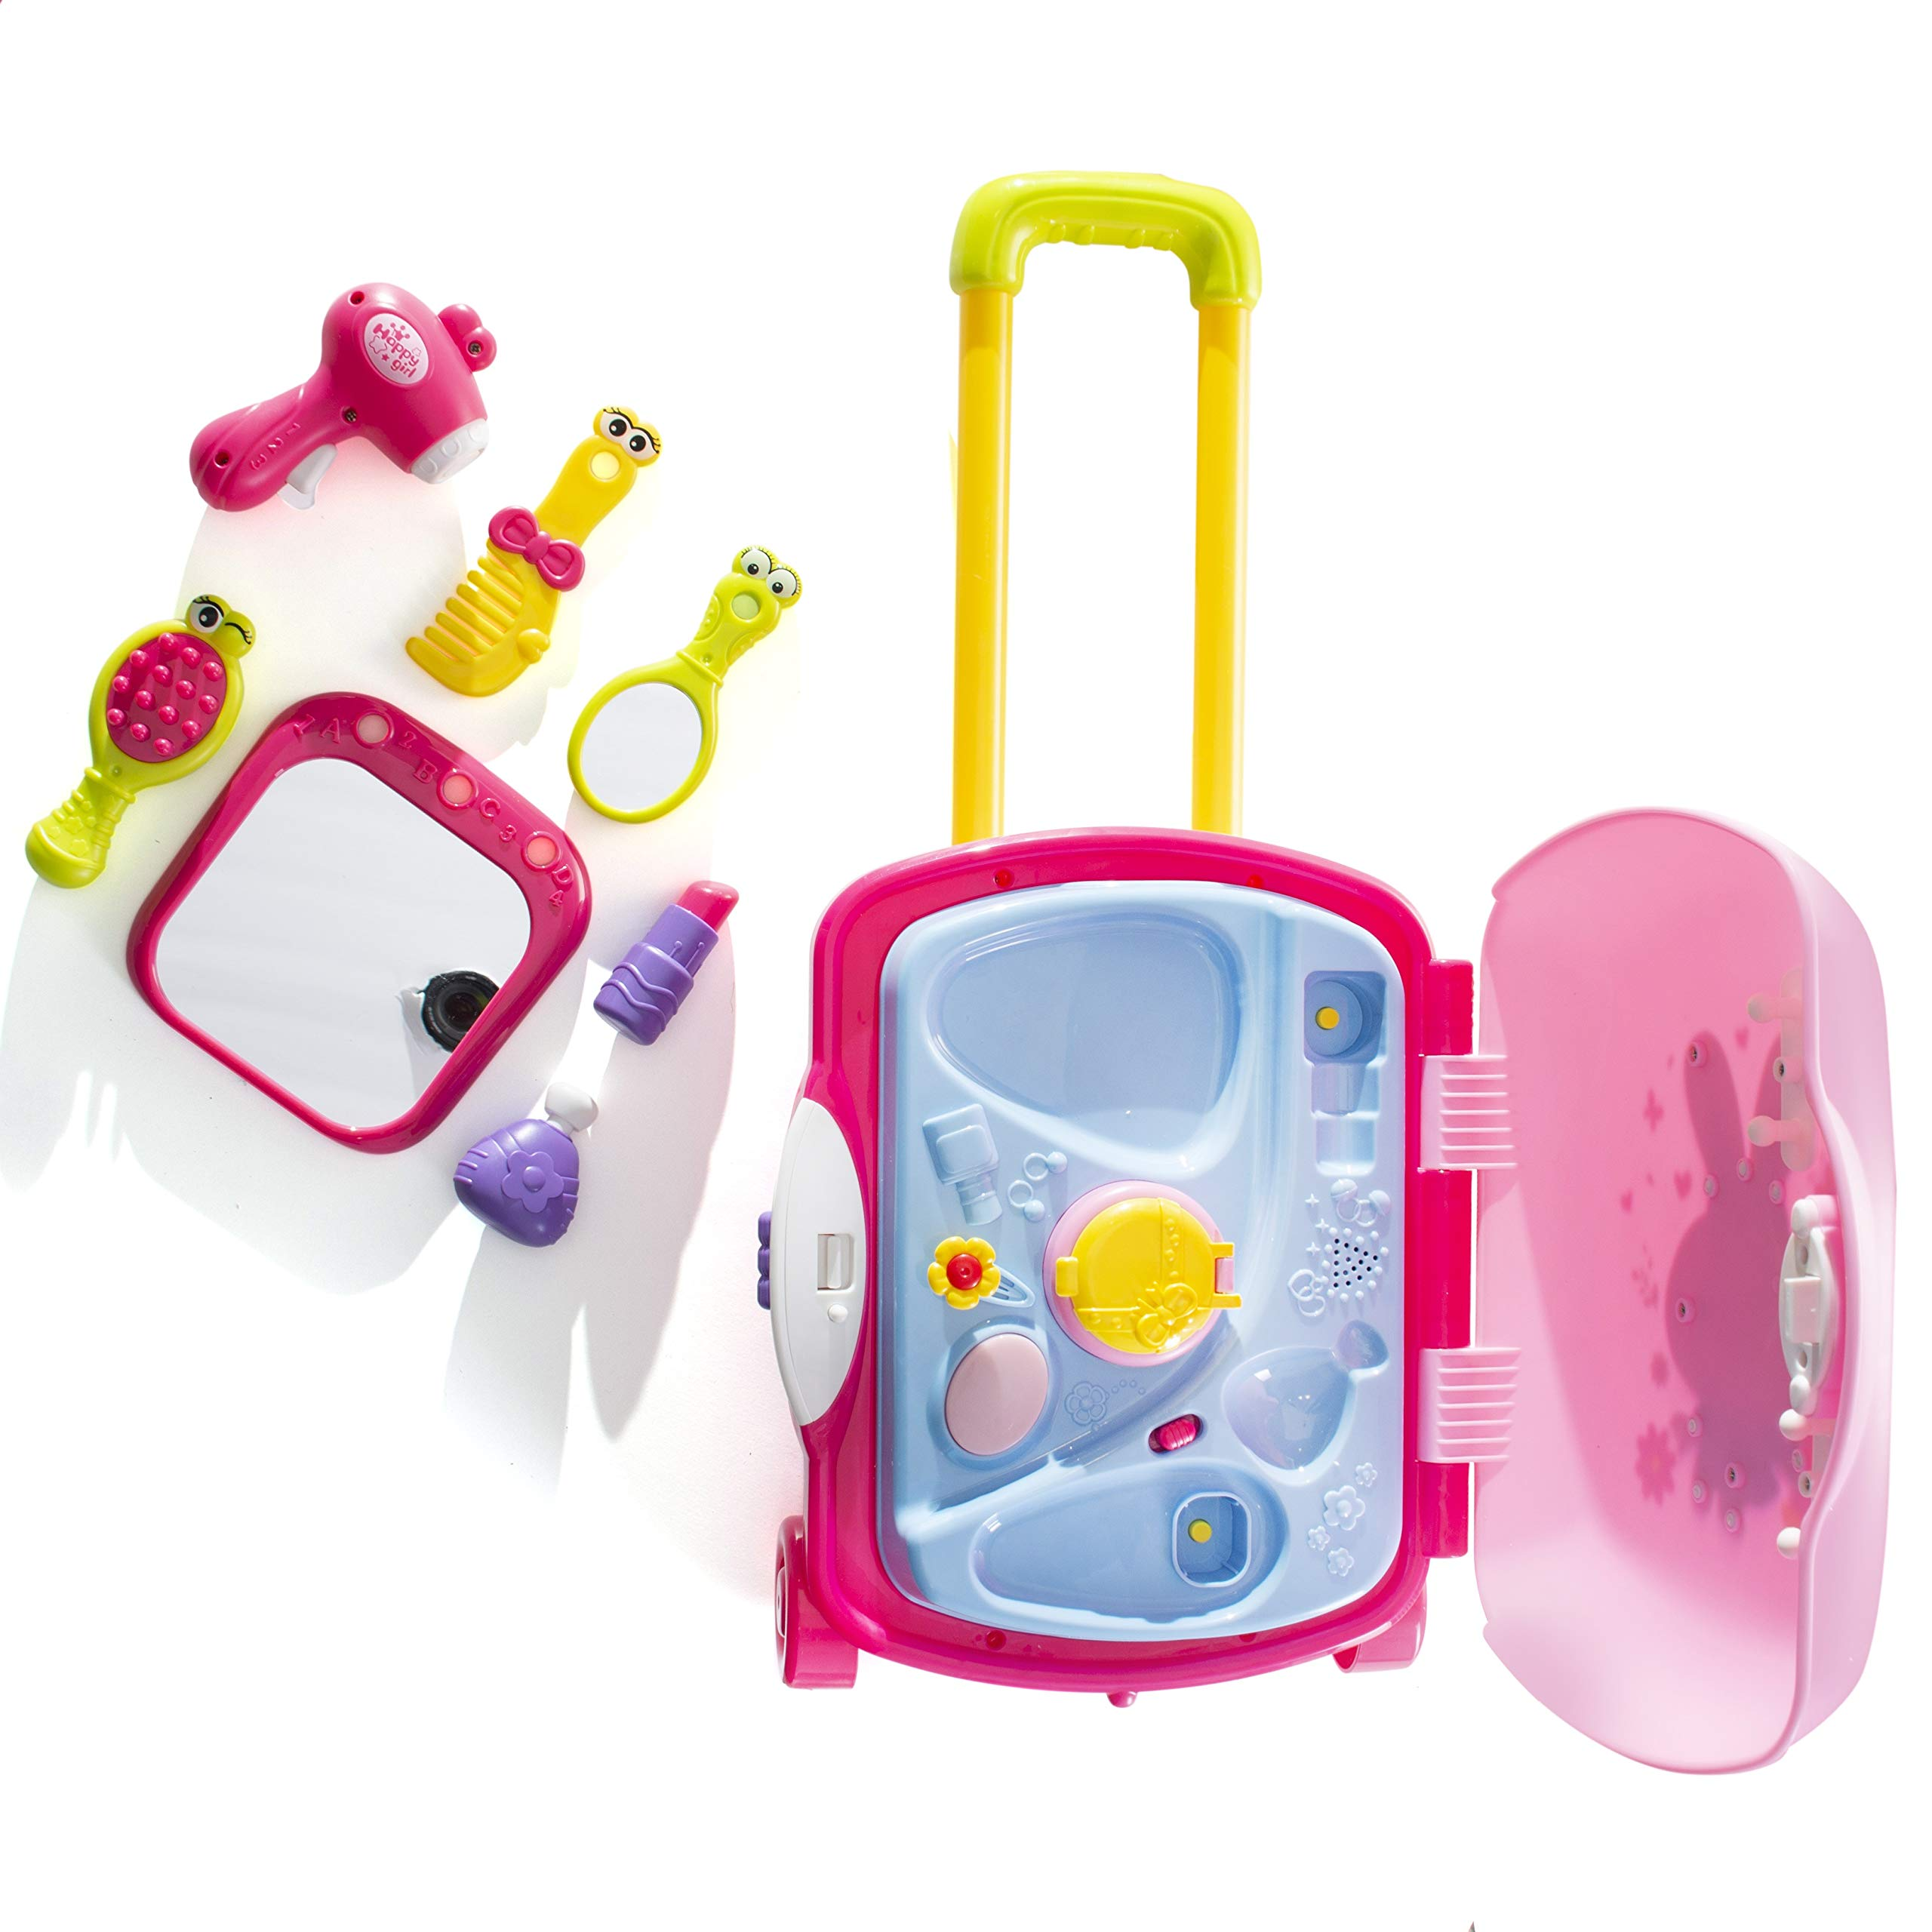 Pretend Play Girls Kids Beauty Salon Set with Realistic Mirror and Accesories Play Set with Fashion & Makeup Accessories for Girls by Prextex (Image #7)